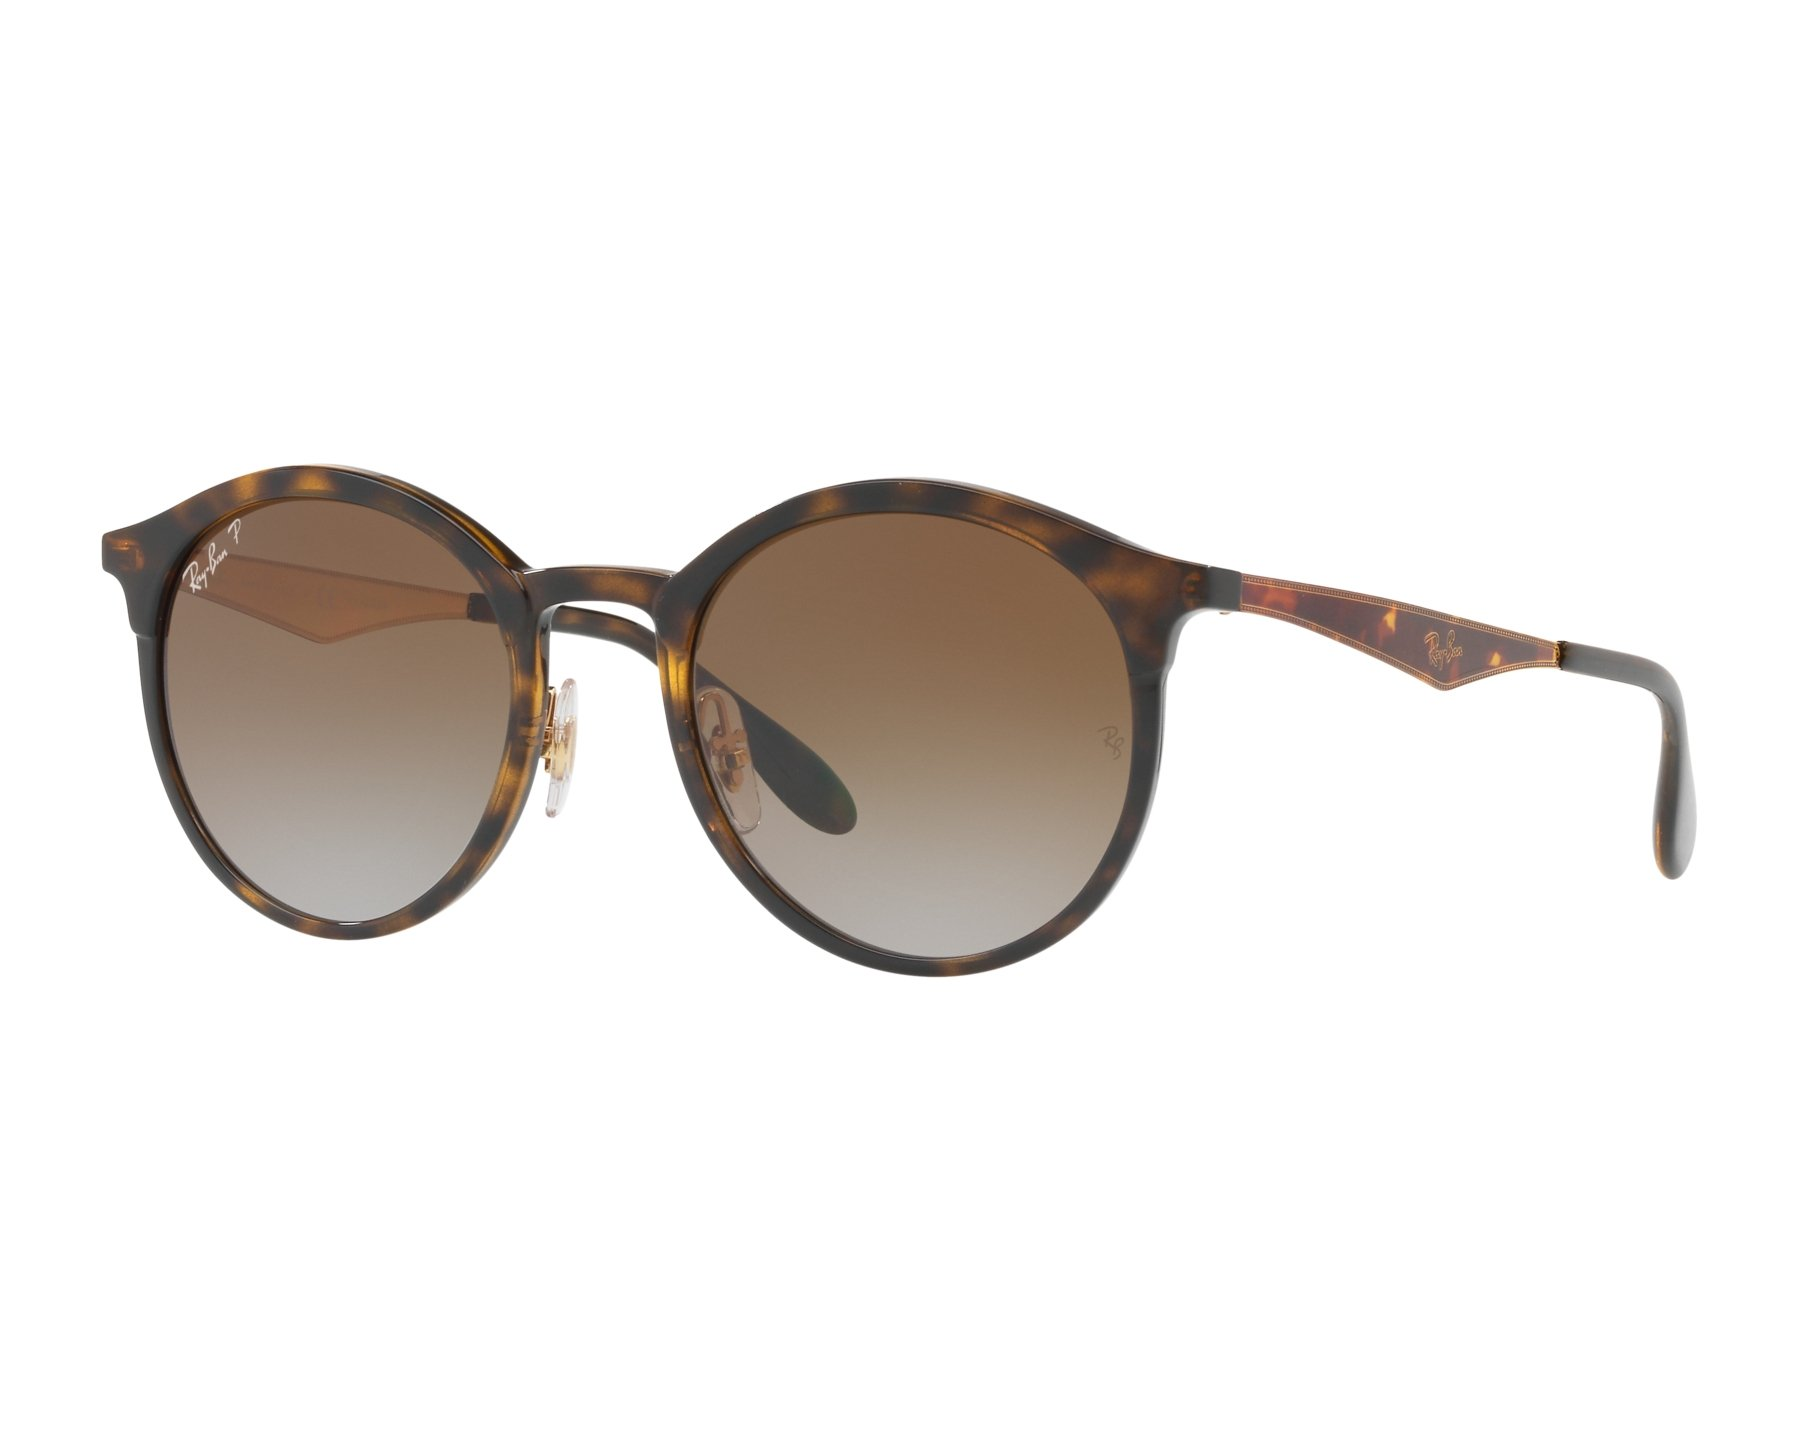 Ray-Ban RB4277 710/T5 51 mm/21 mm MOhSMKm527